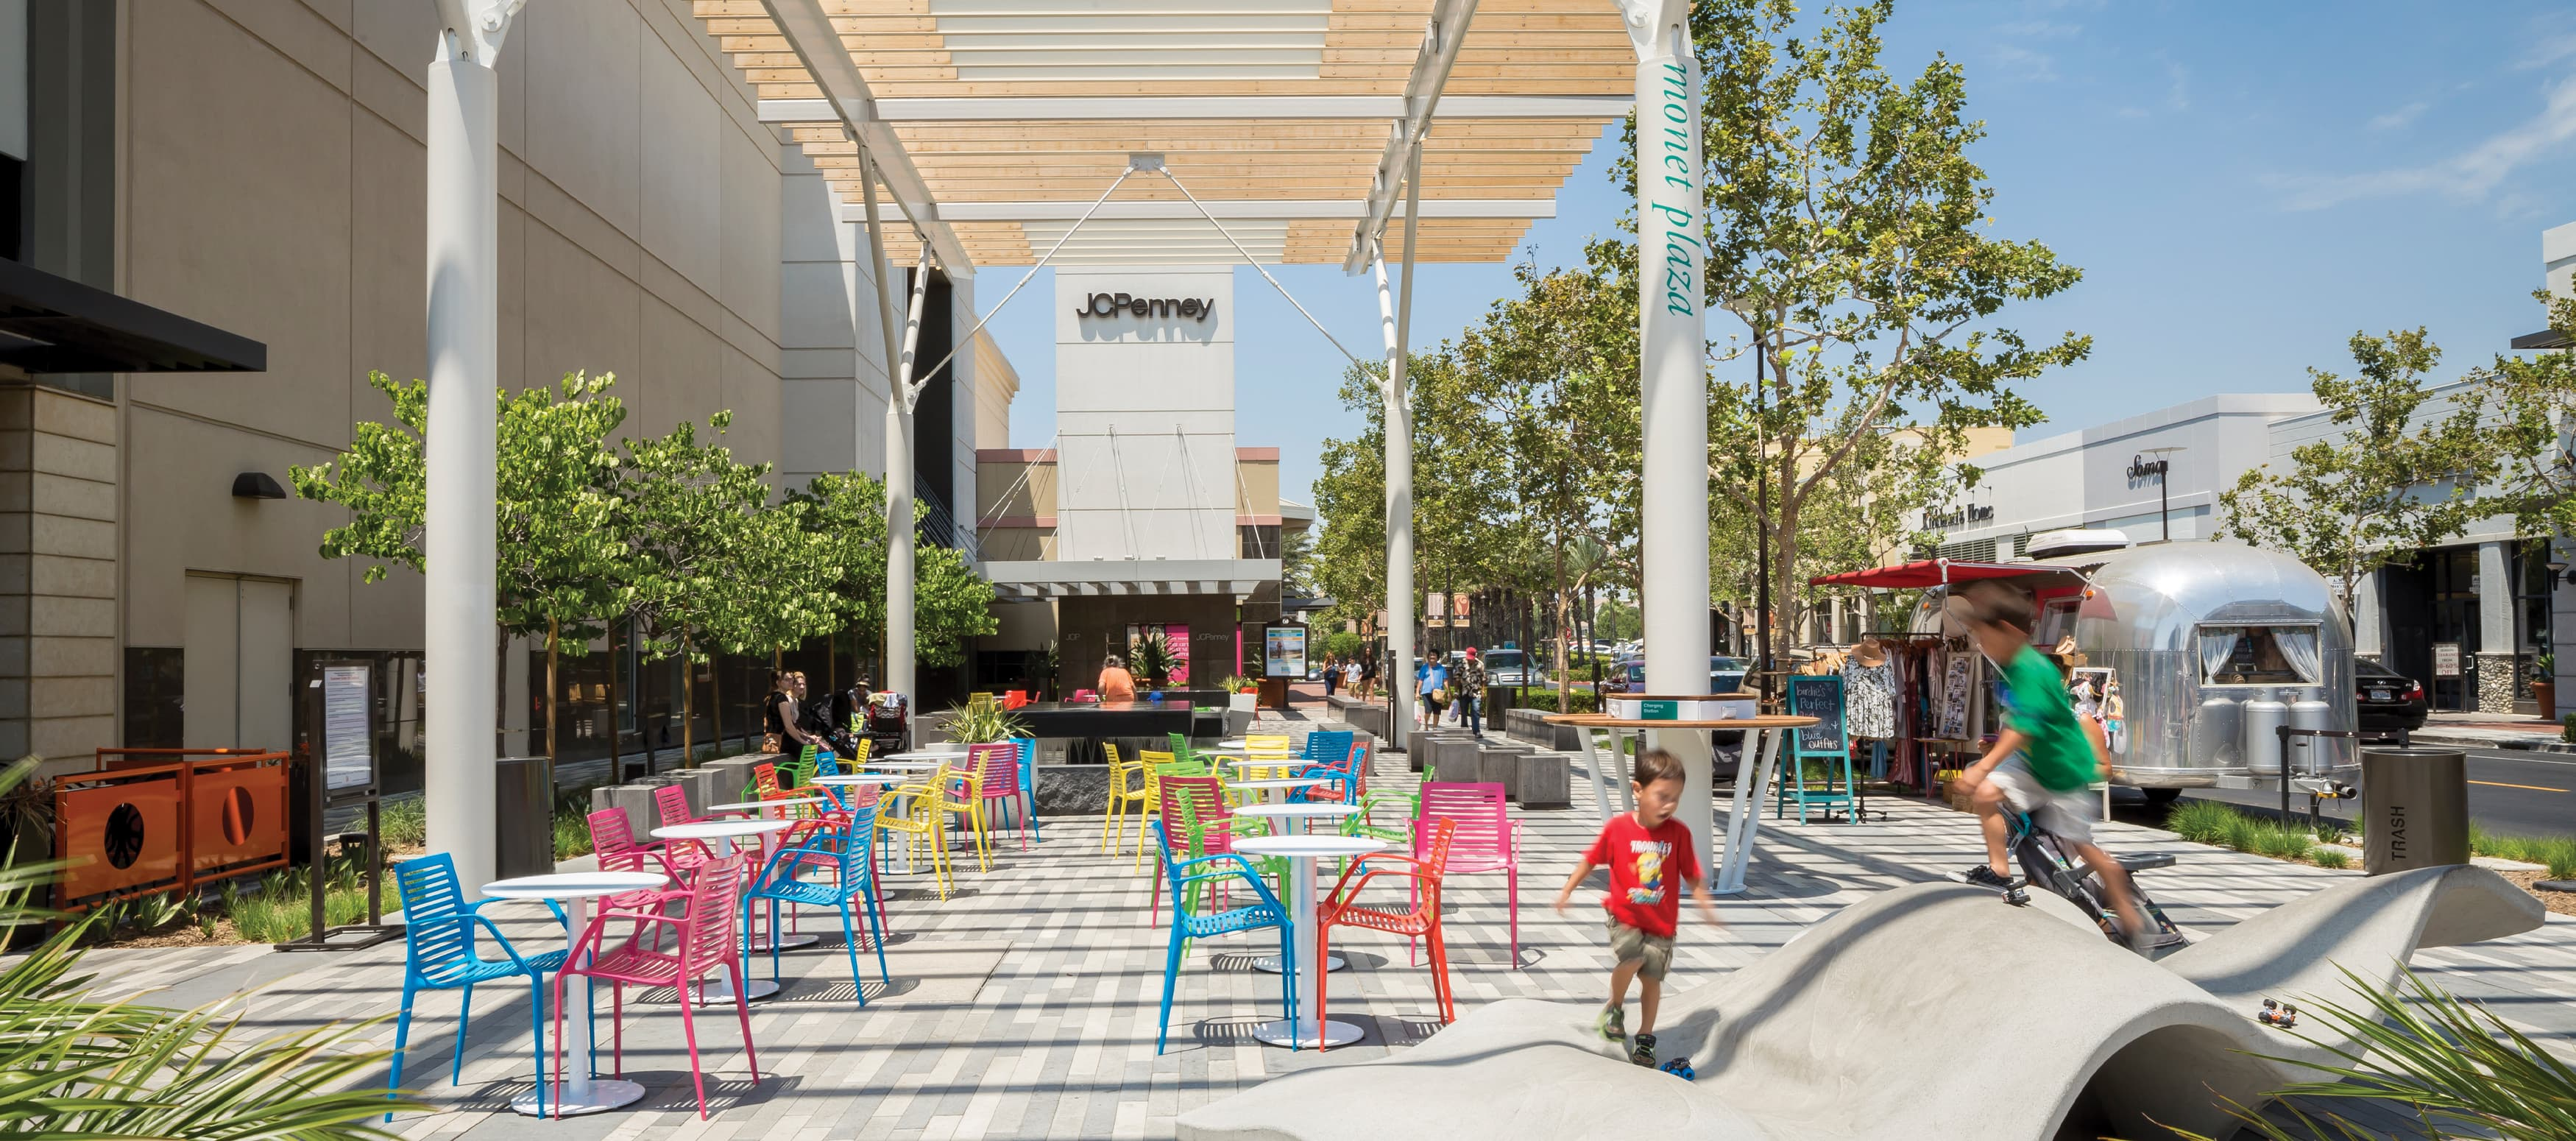 children play on sculptural piece at outdoor retail center with colorful chairs and shopping in the background